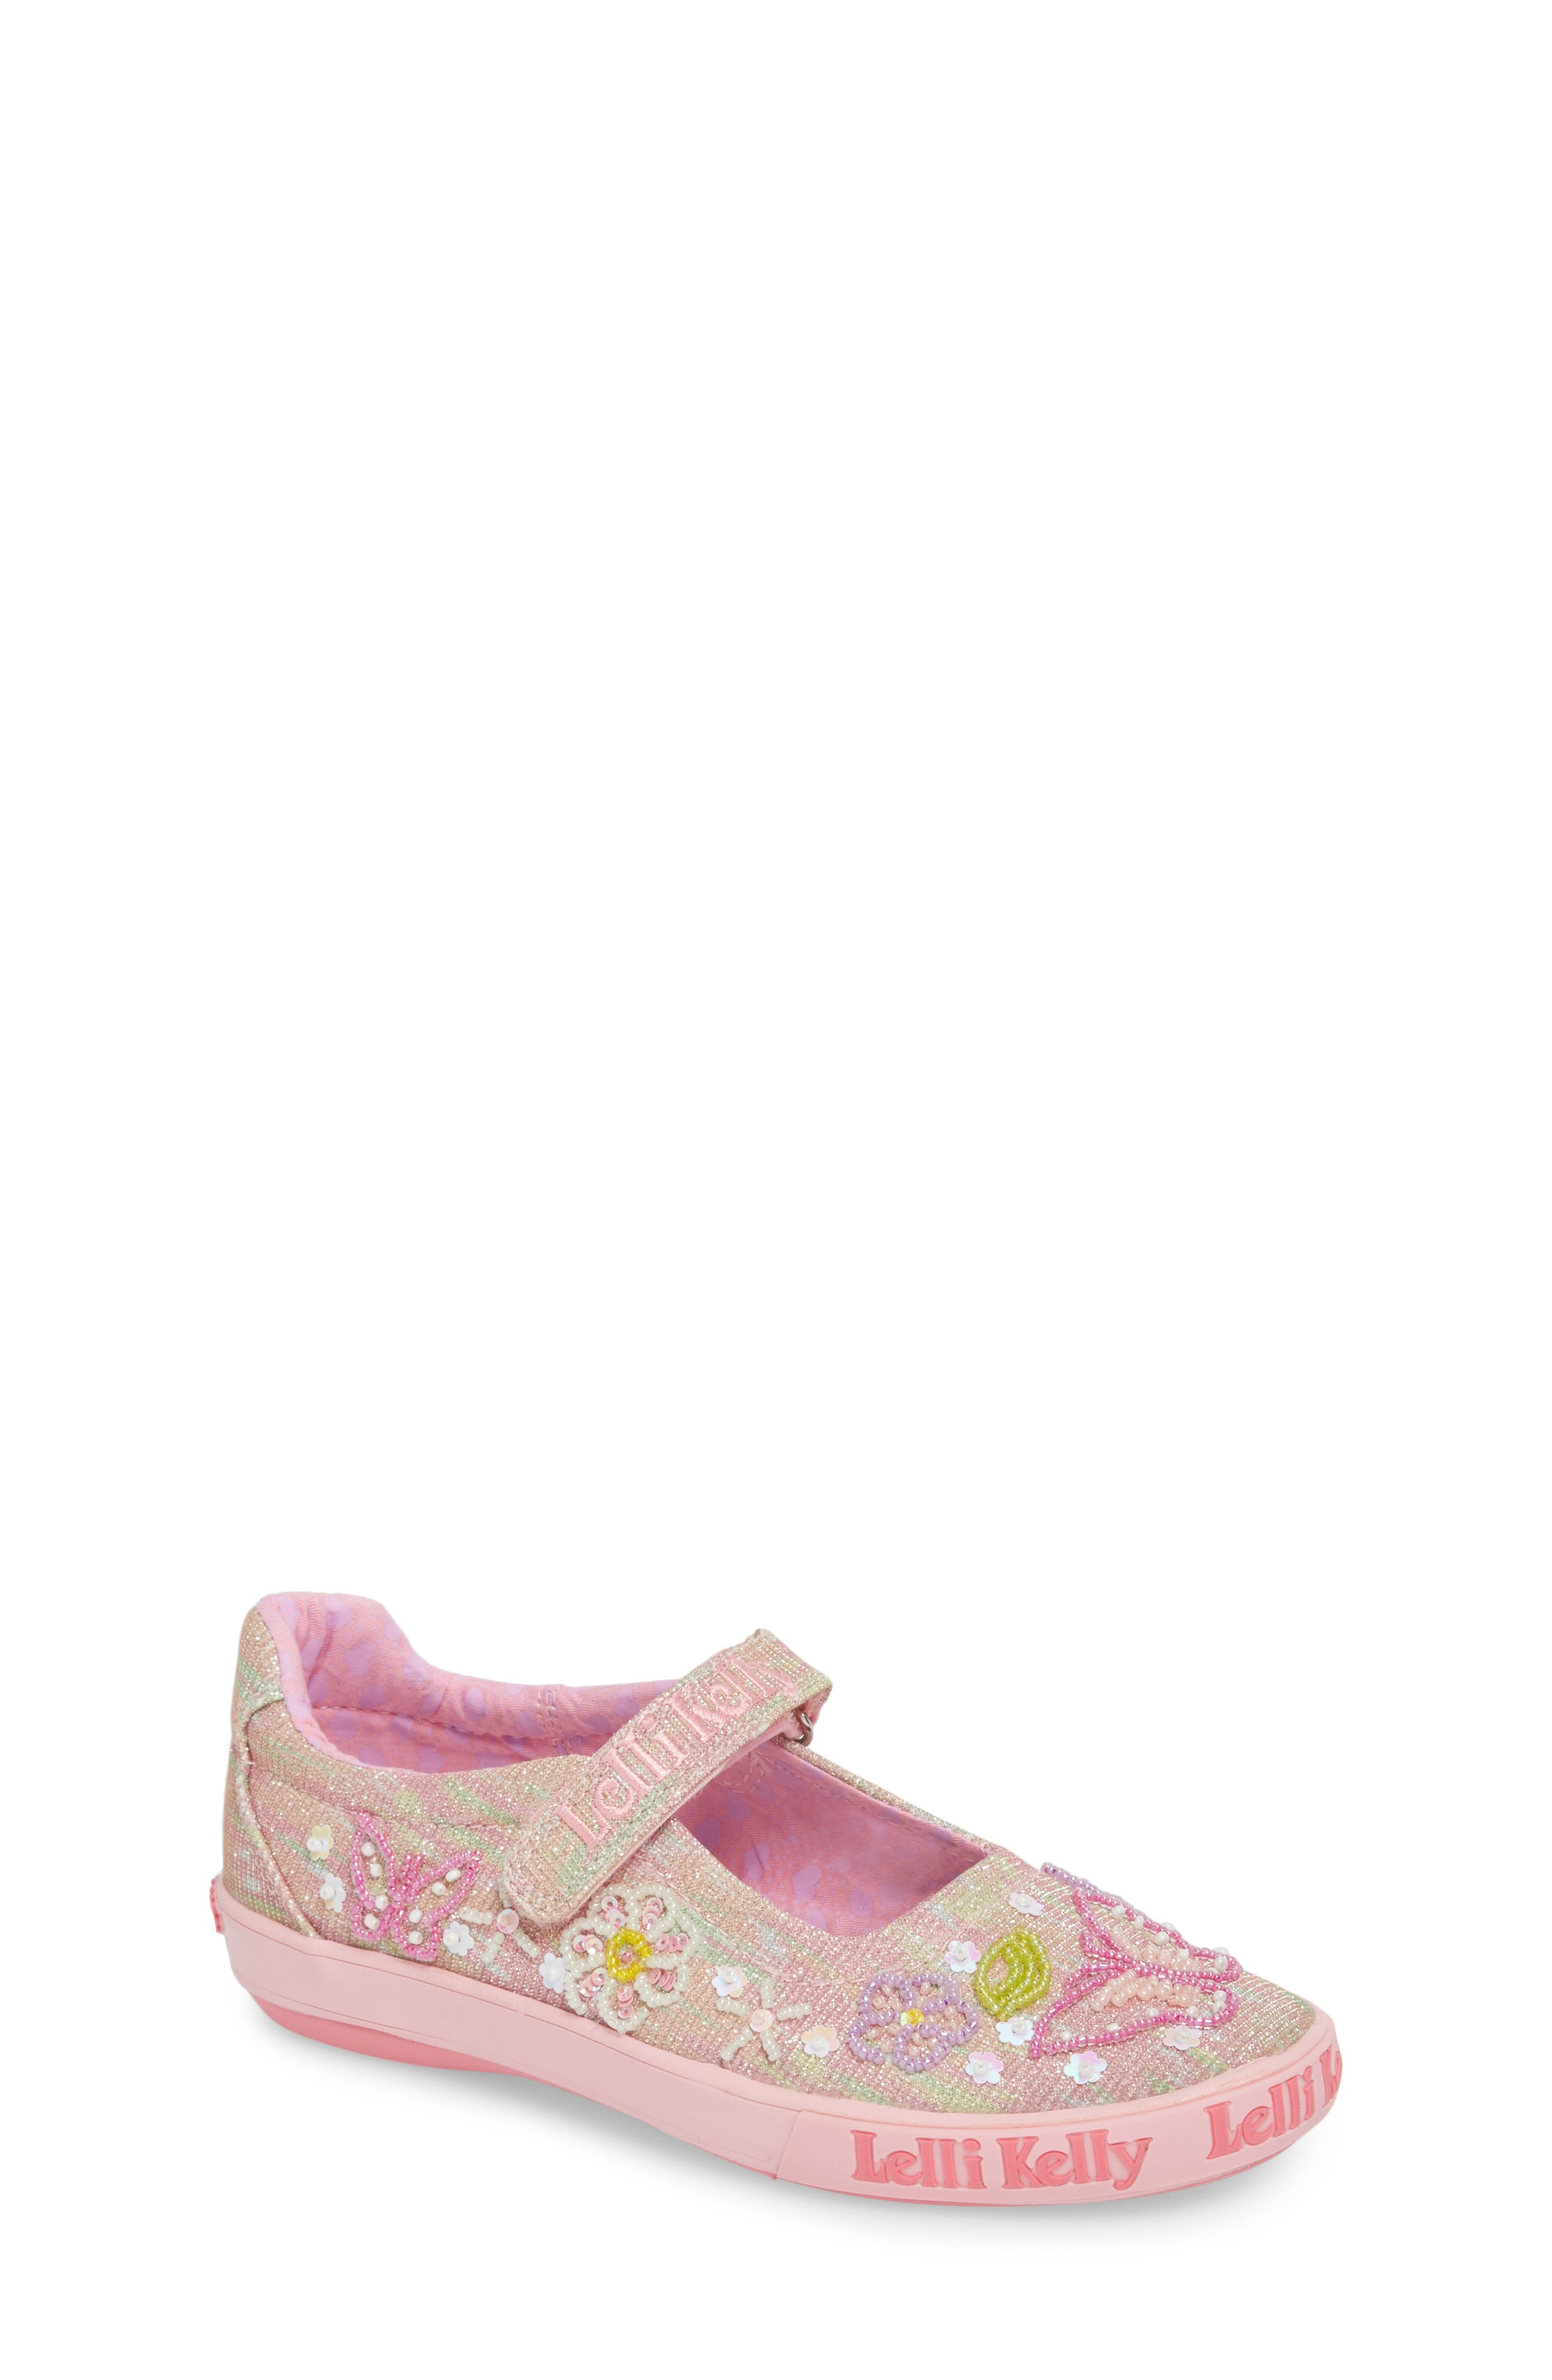 Beaded Mary Jane Sneaker,                             Main thumbnail 1, color,                             Pink